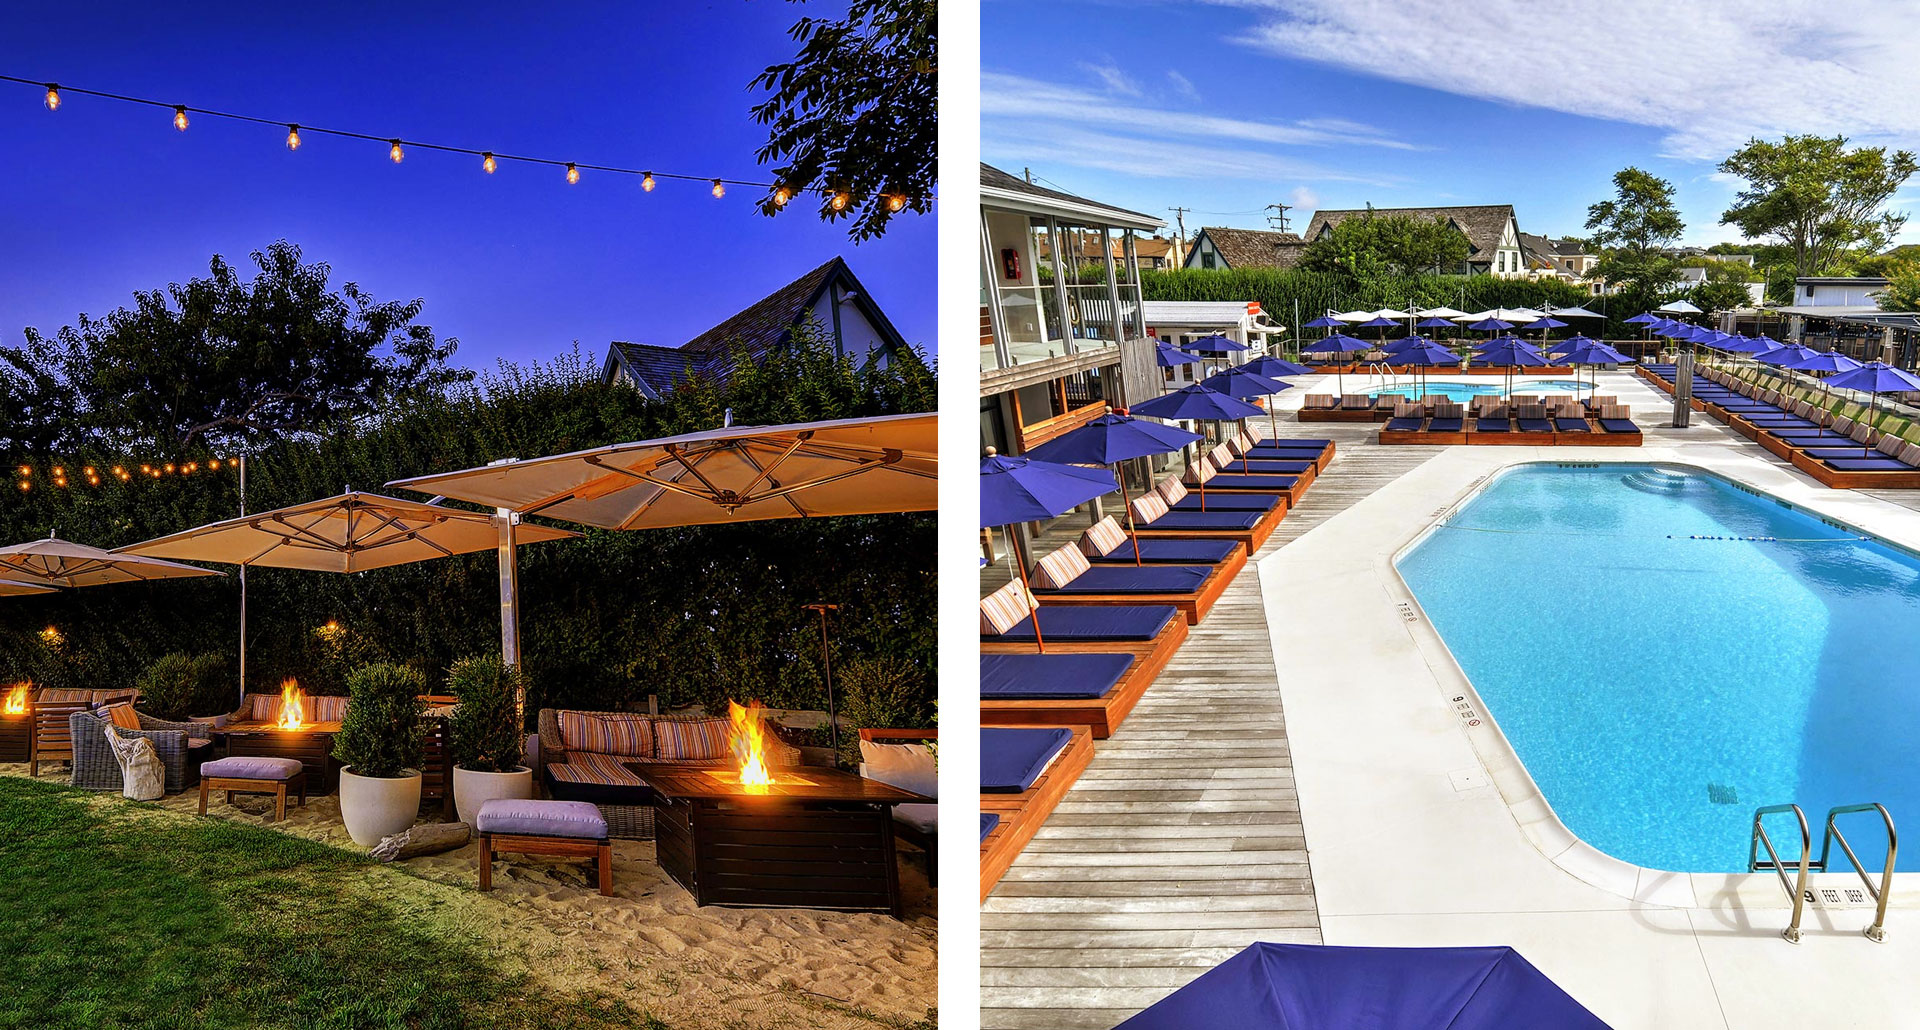 The Montauk Beach House - boutique hotel in Montauk